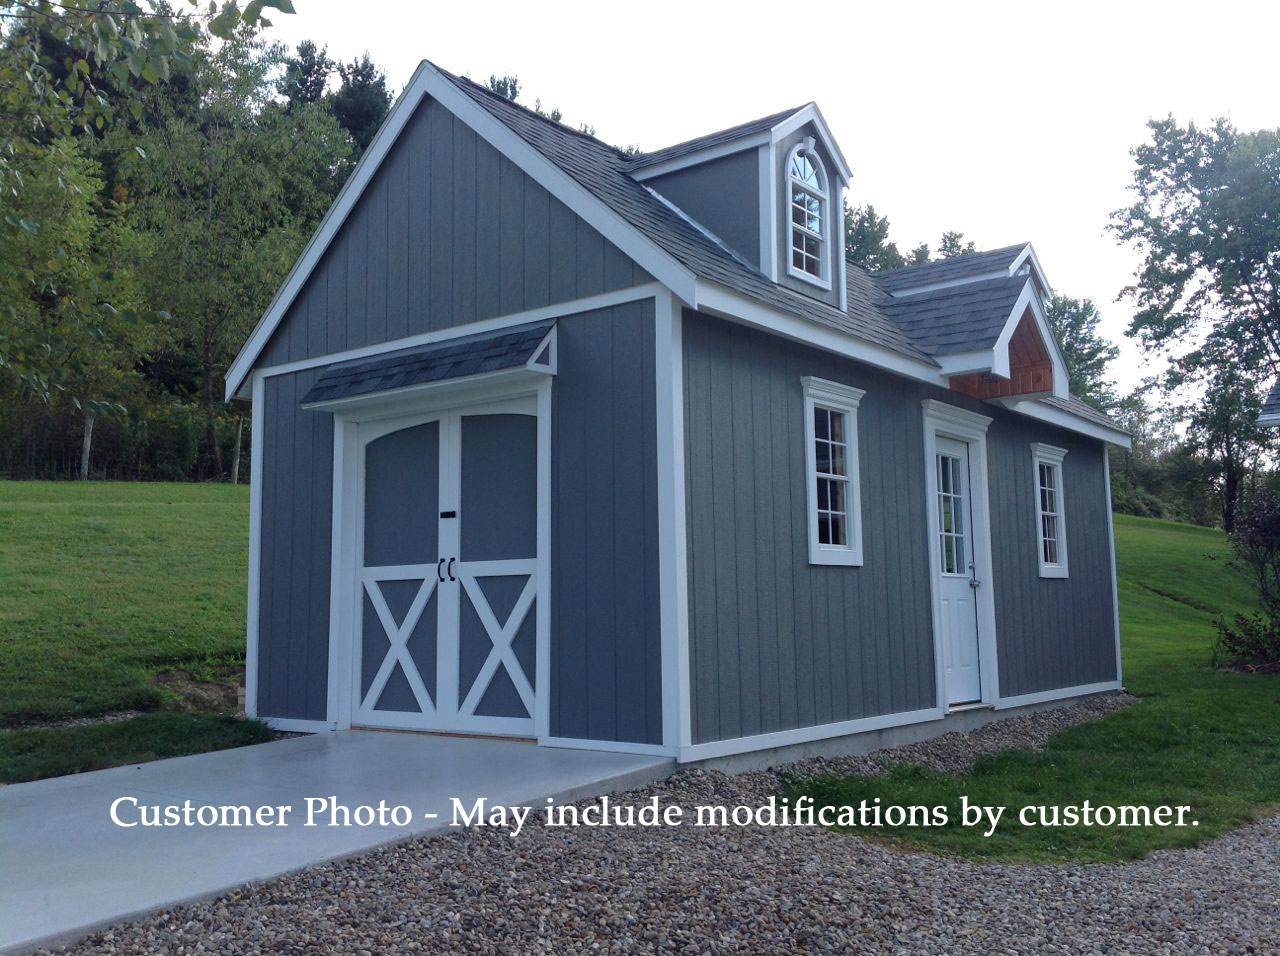 kit barn diy of a x storage sheds loft shed wood garden style awesome photo with kits barns